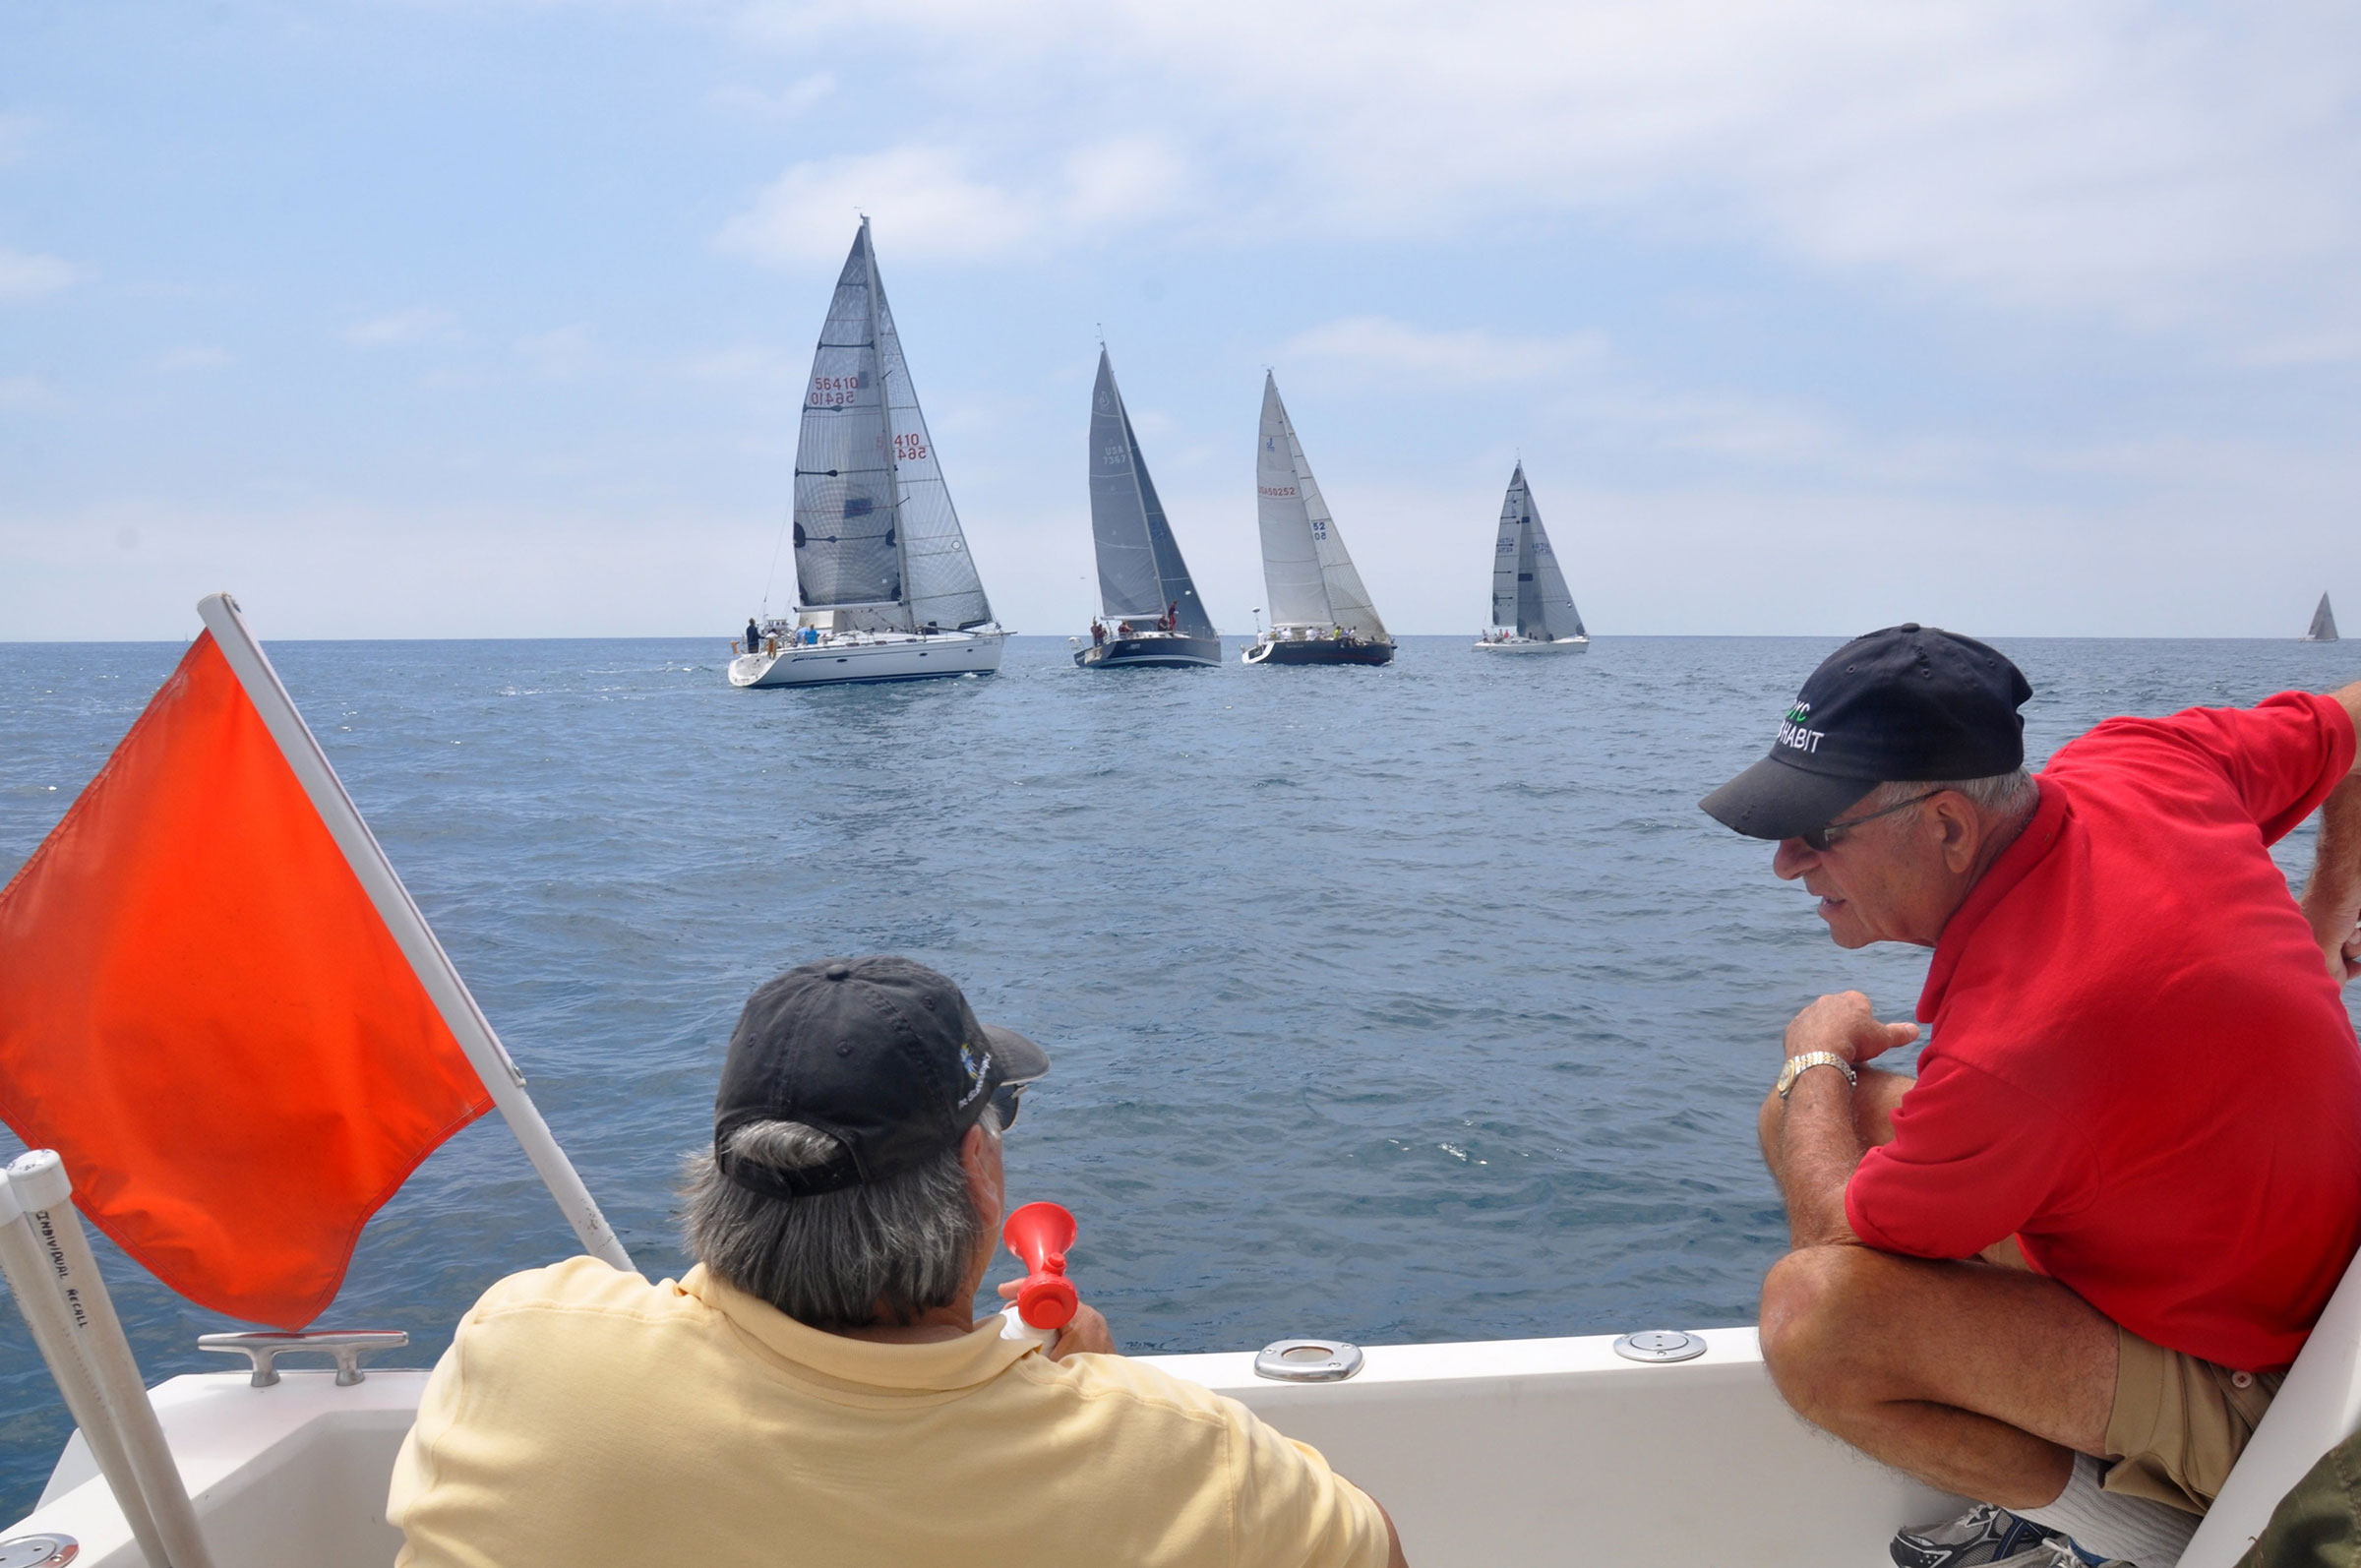 Charity regatta challenges sailors and supports a good cause